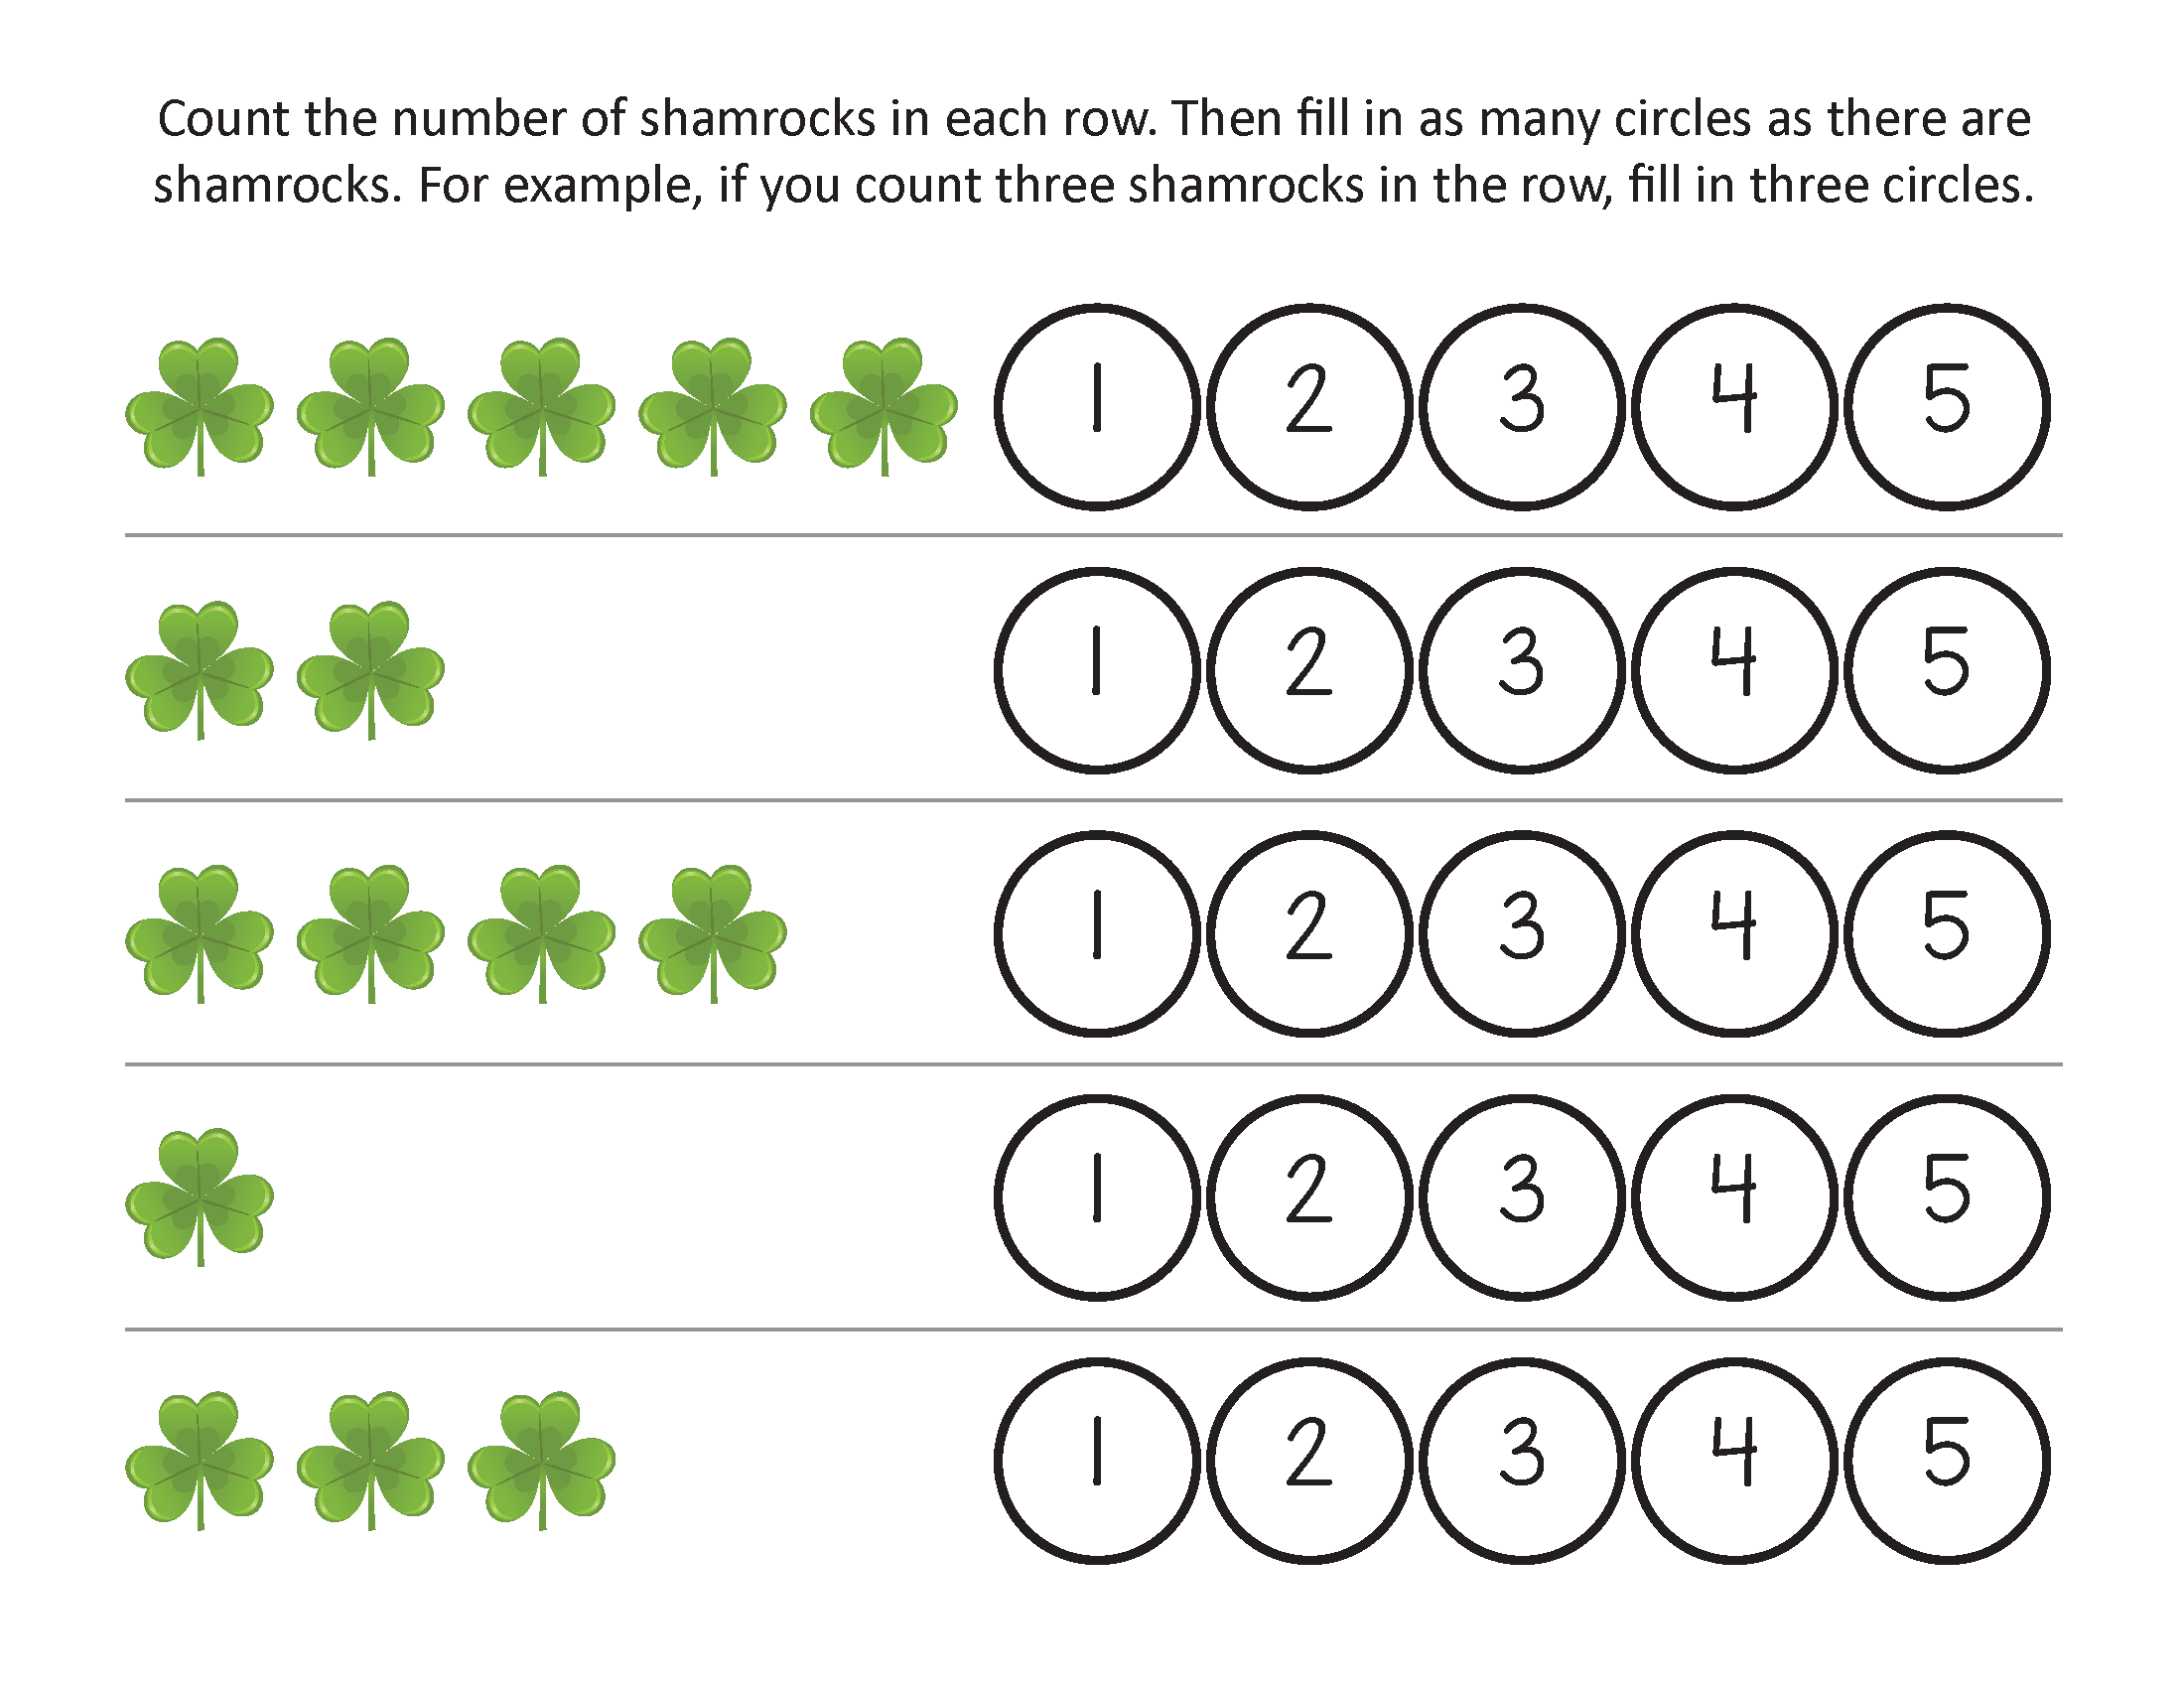 photo relating to St Patrick's Day Worksheets Free Printable referred to as St Patricks Working day Worksheets - Simplest Coloring Internet pages For Youngsters